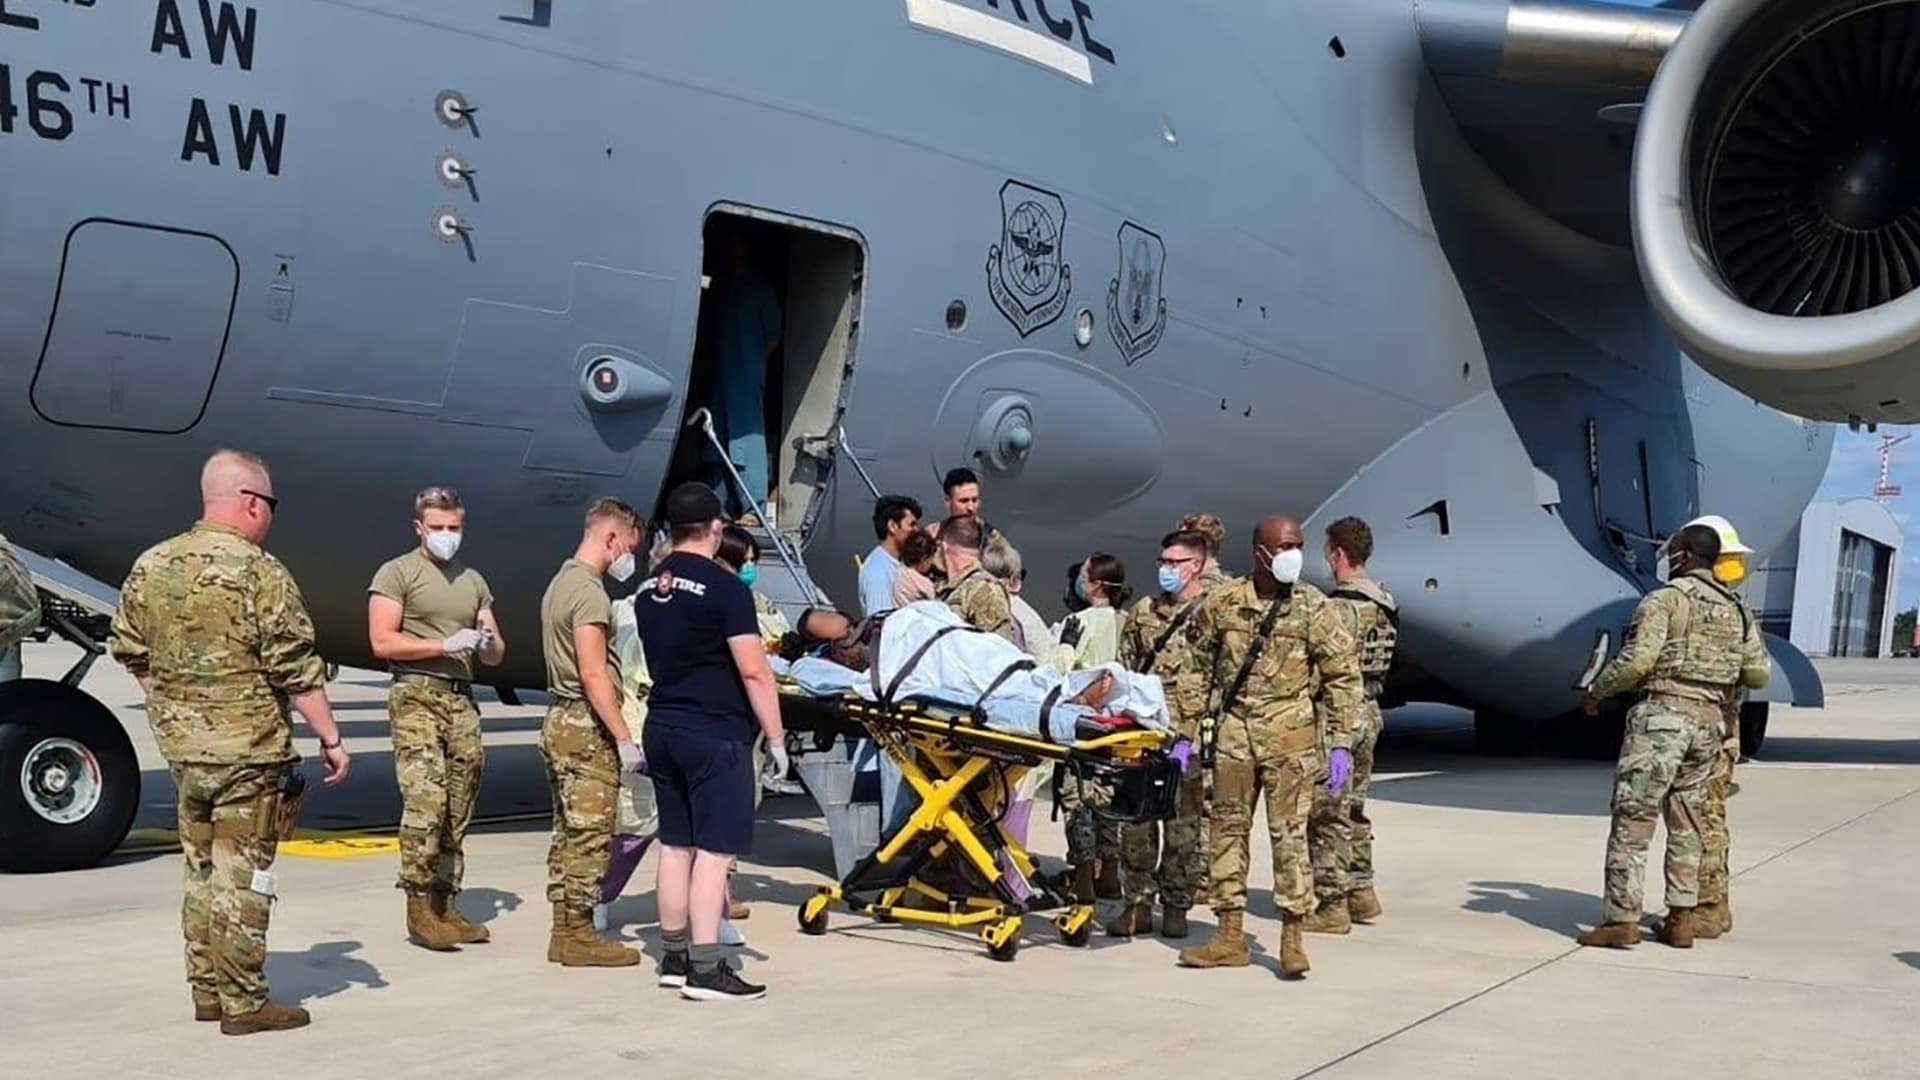 Medical support personnel help an Afghan mother, whose identity has been digitally obscured at the source, with her family off a U.S. Air Force C-17 at Ramstein Air Base in Germany moments after she delivered a baby aboard the aircraft on Aug. 21, 2021.